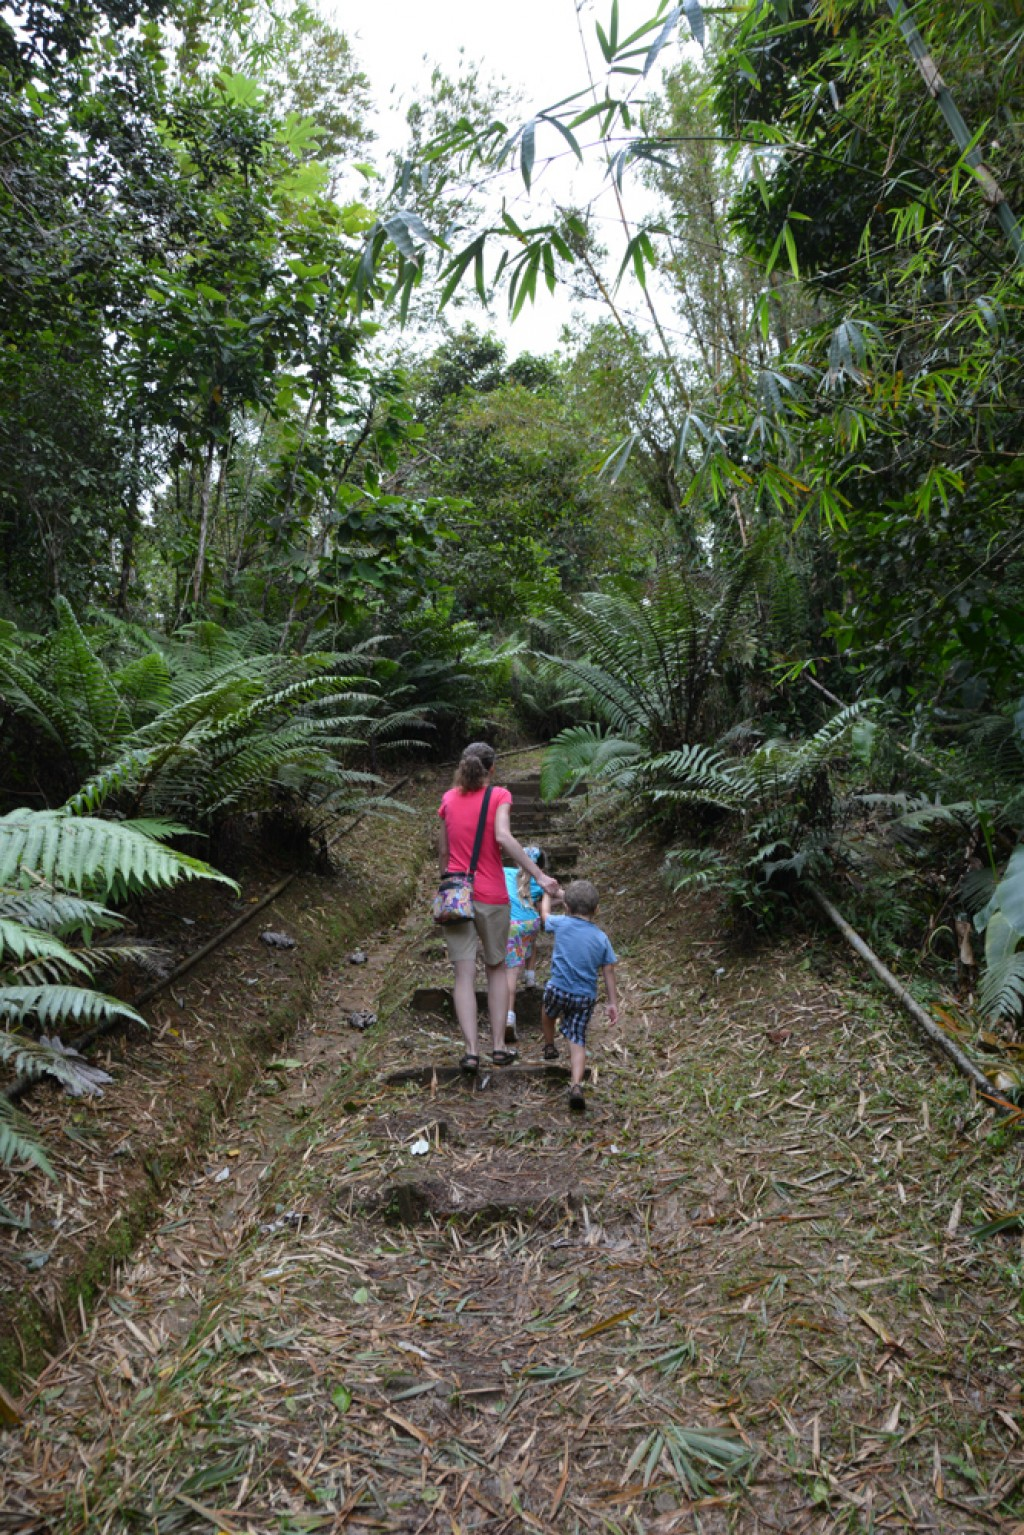 There is a lot to explore in the Grand Etang Rainforest, but we were somewhat limited by having a 3 and 5 year old with us.  Nevertheless we had a great time on the short hike we did, seeing the mono monkeys, and exploring the lake.